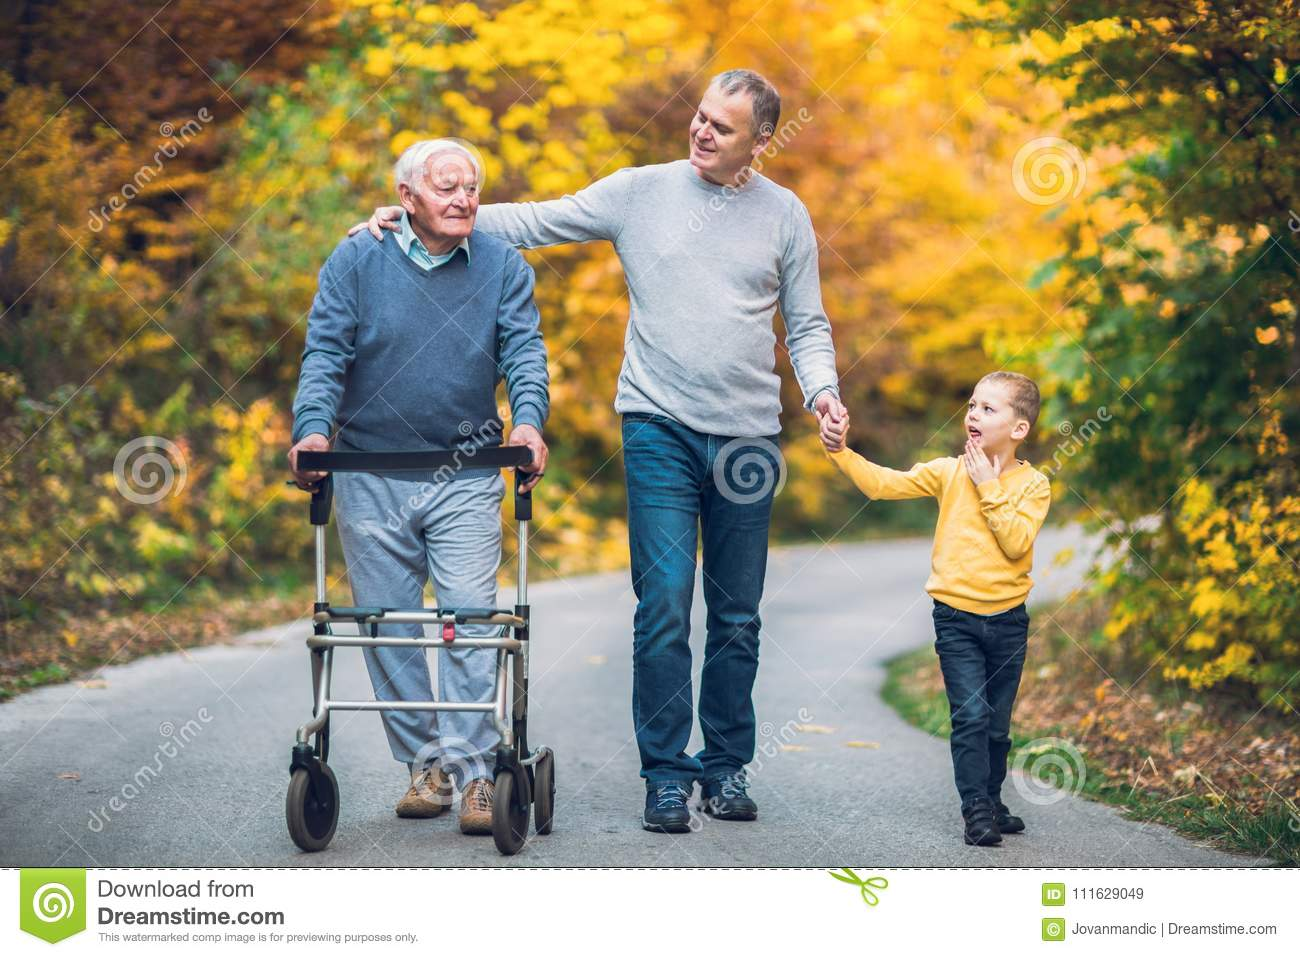 Elderly father, adult son and grandson out for a walk in the park